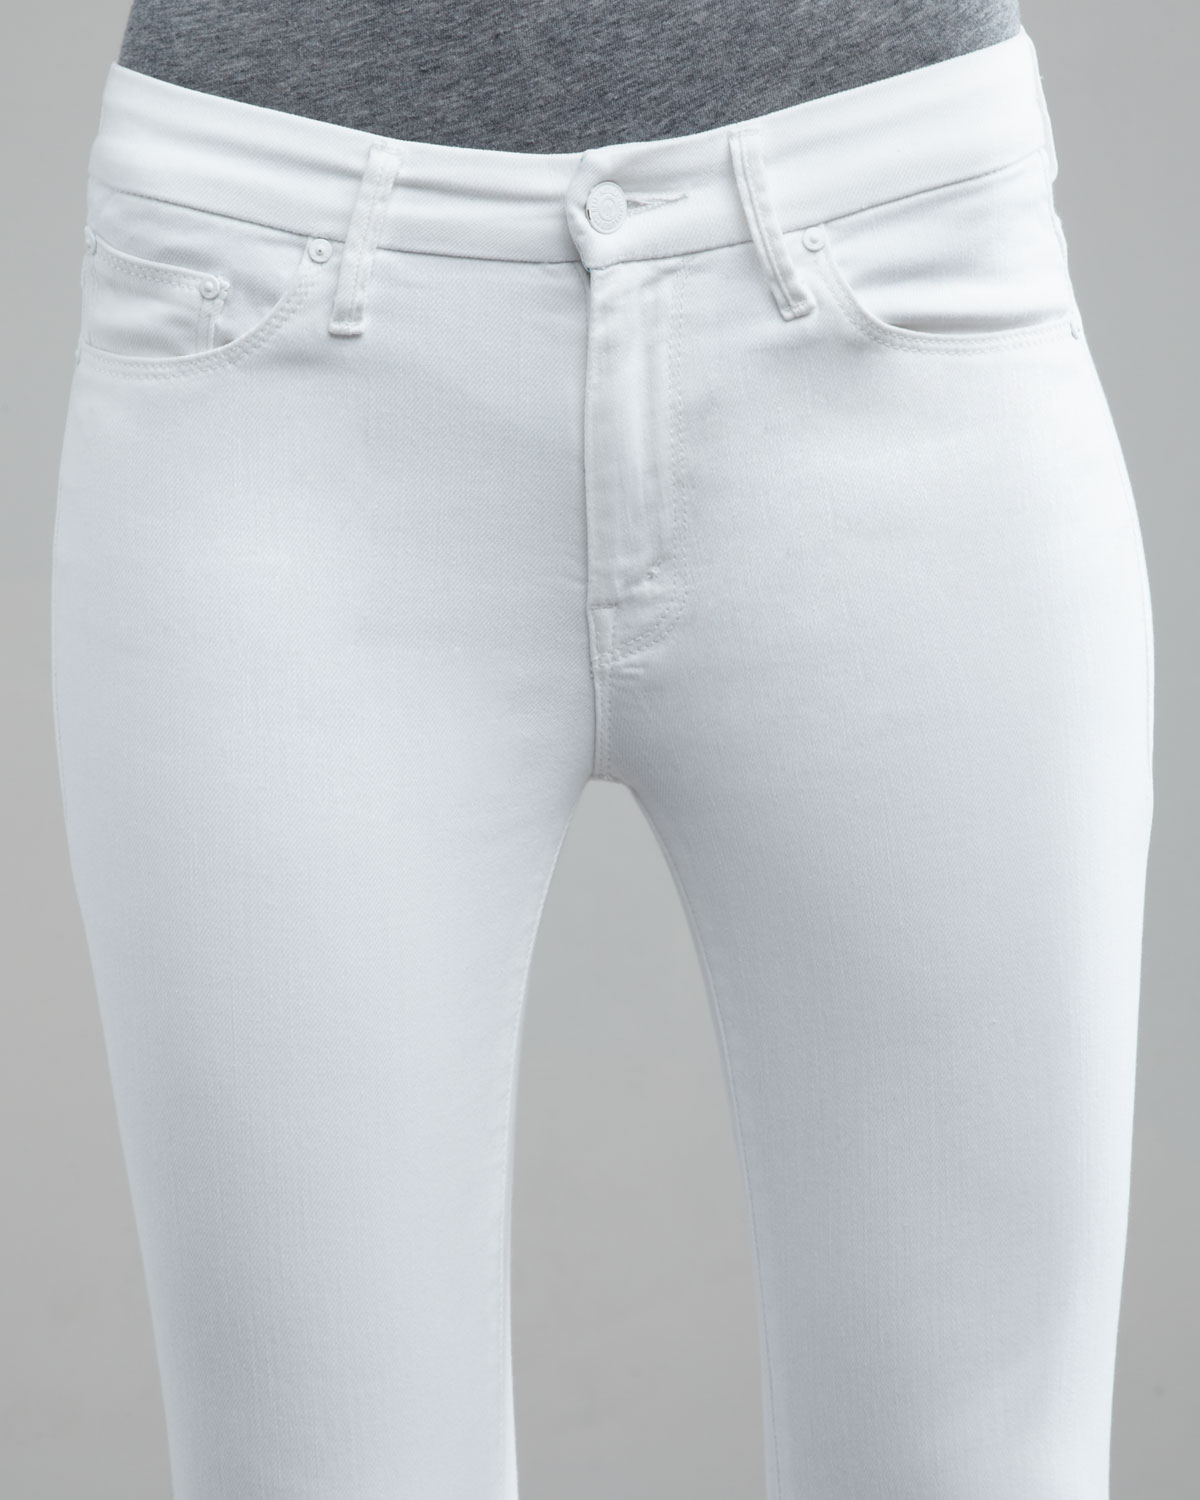 distressed cropped jeans - White Mother Shopping Online Cheap Price n2n8y